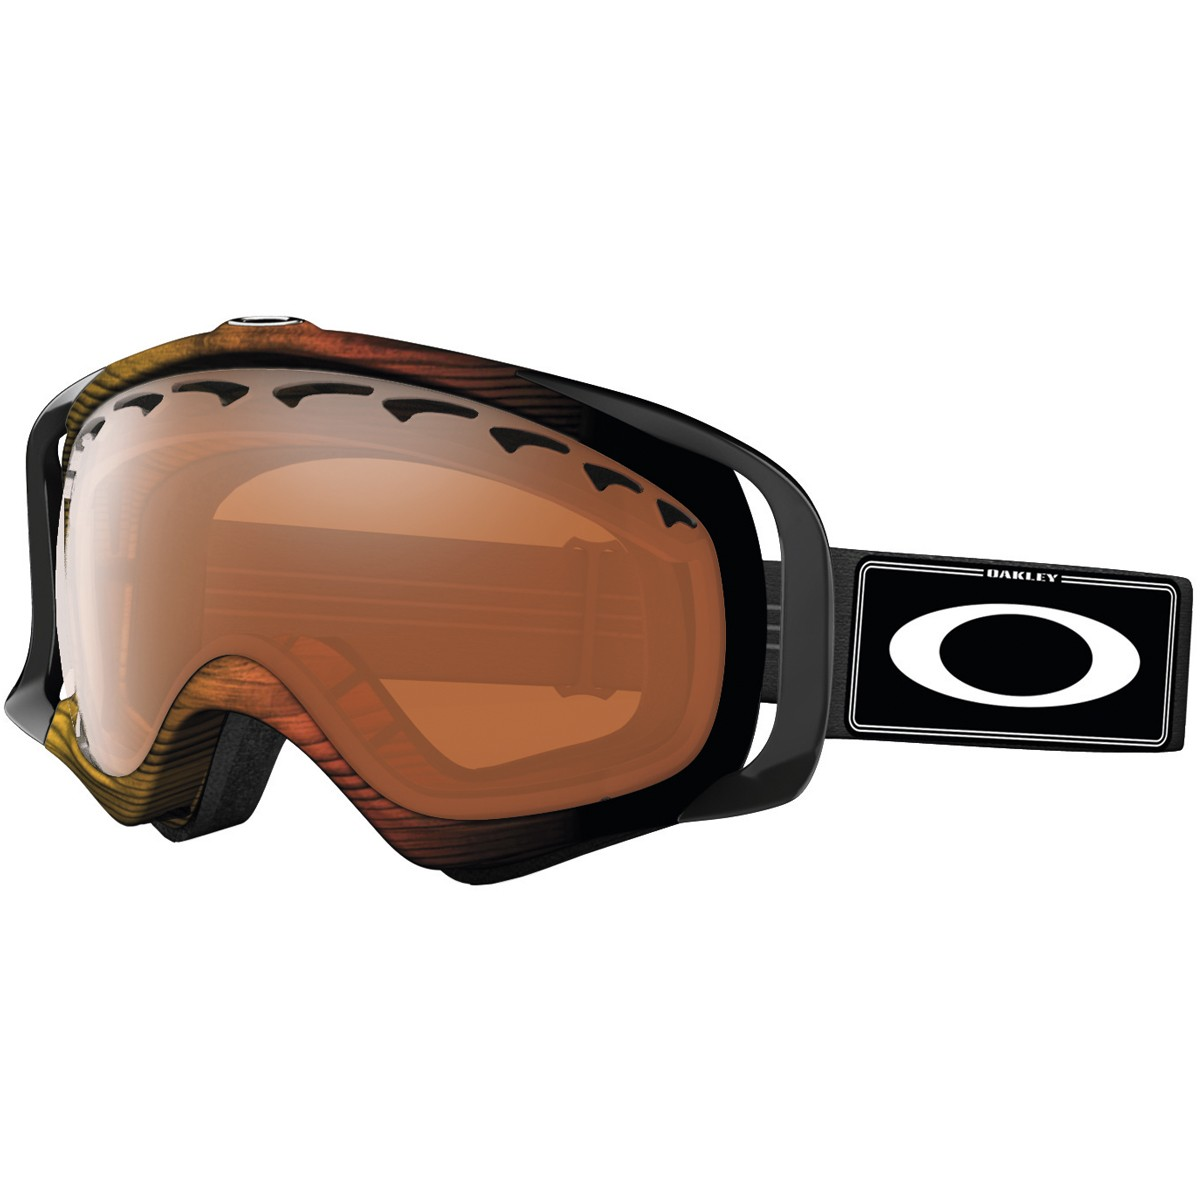 All Black Oakley Goggles Www Tapdance Org